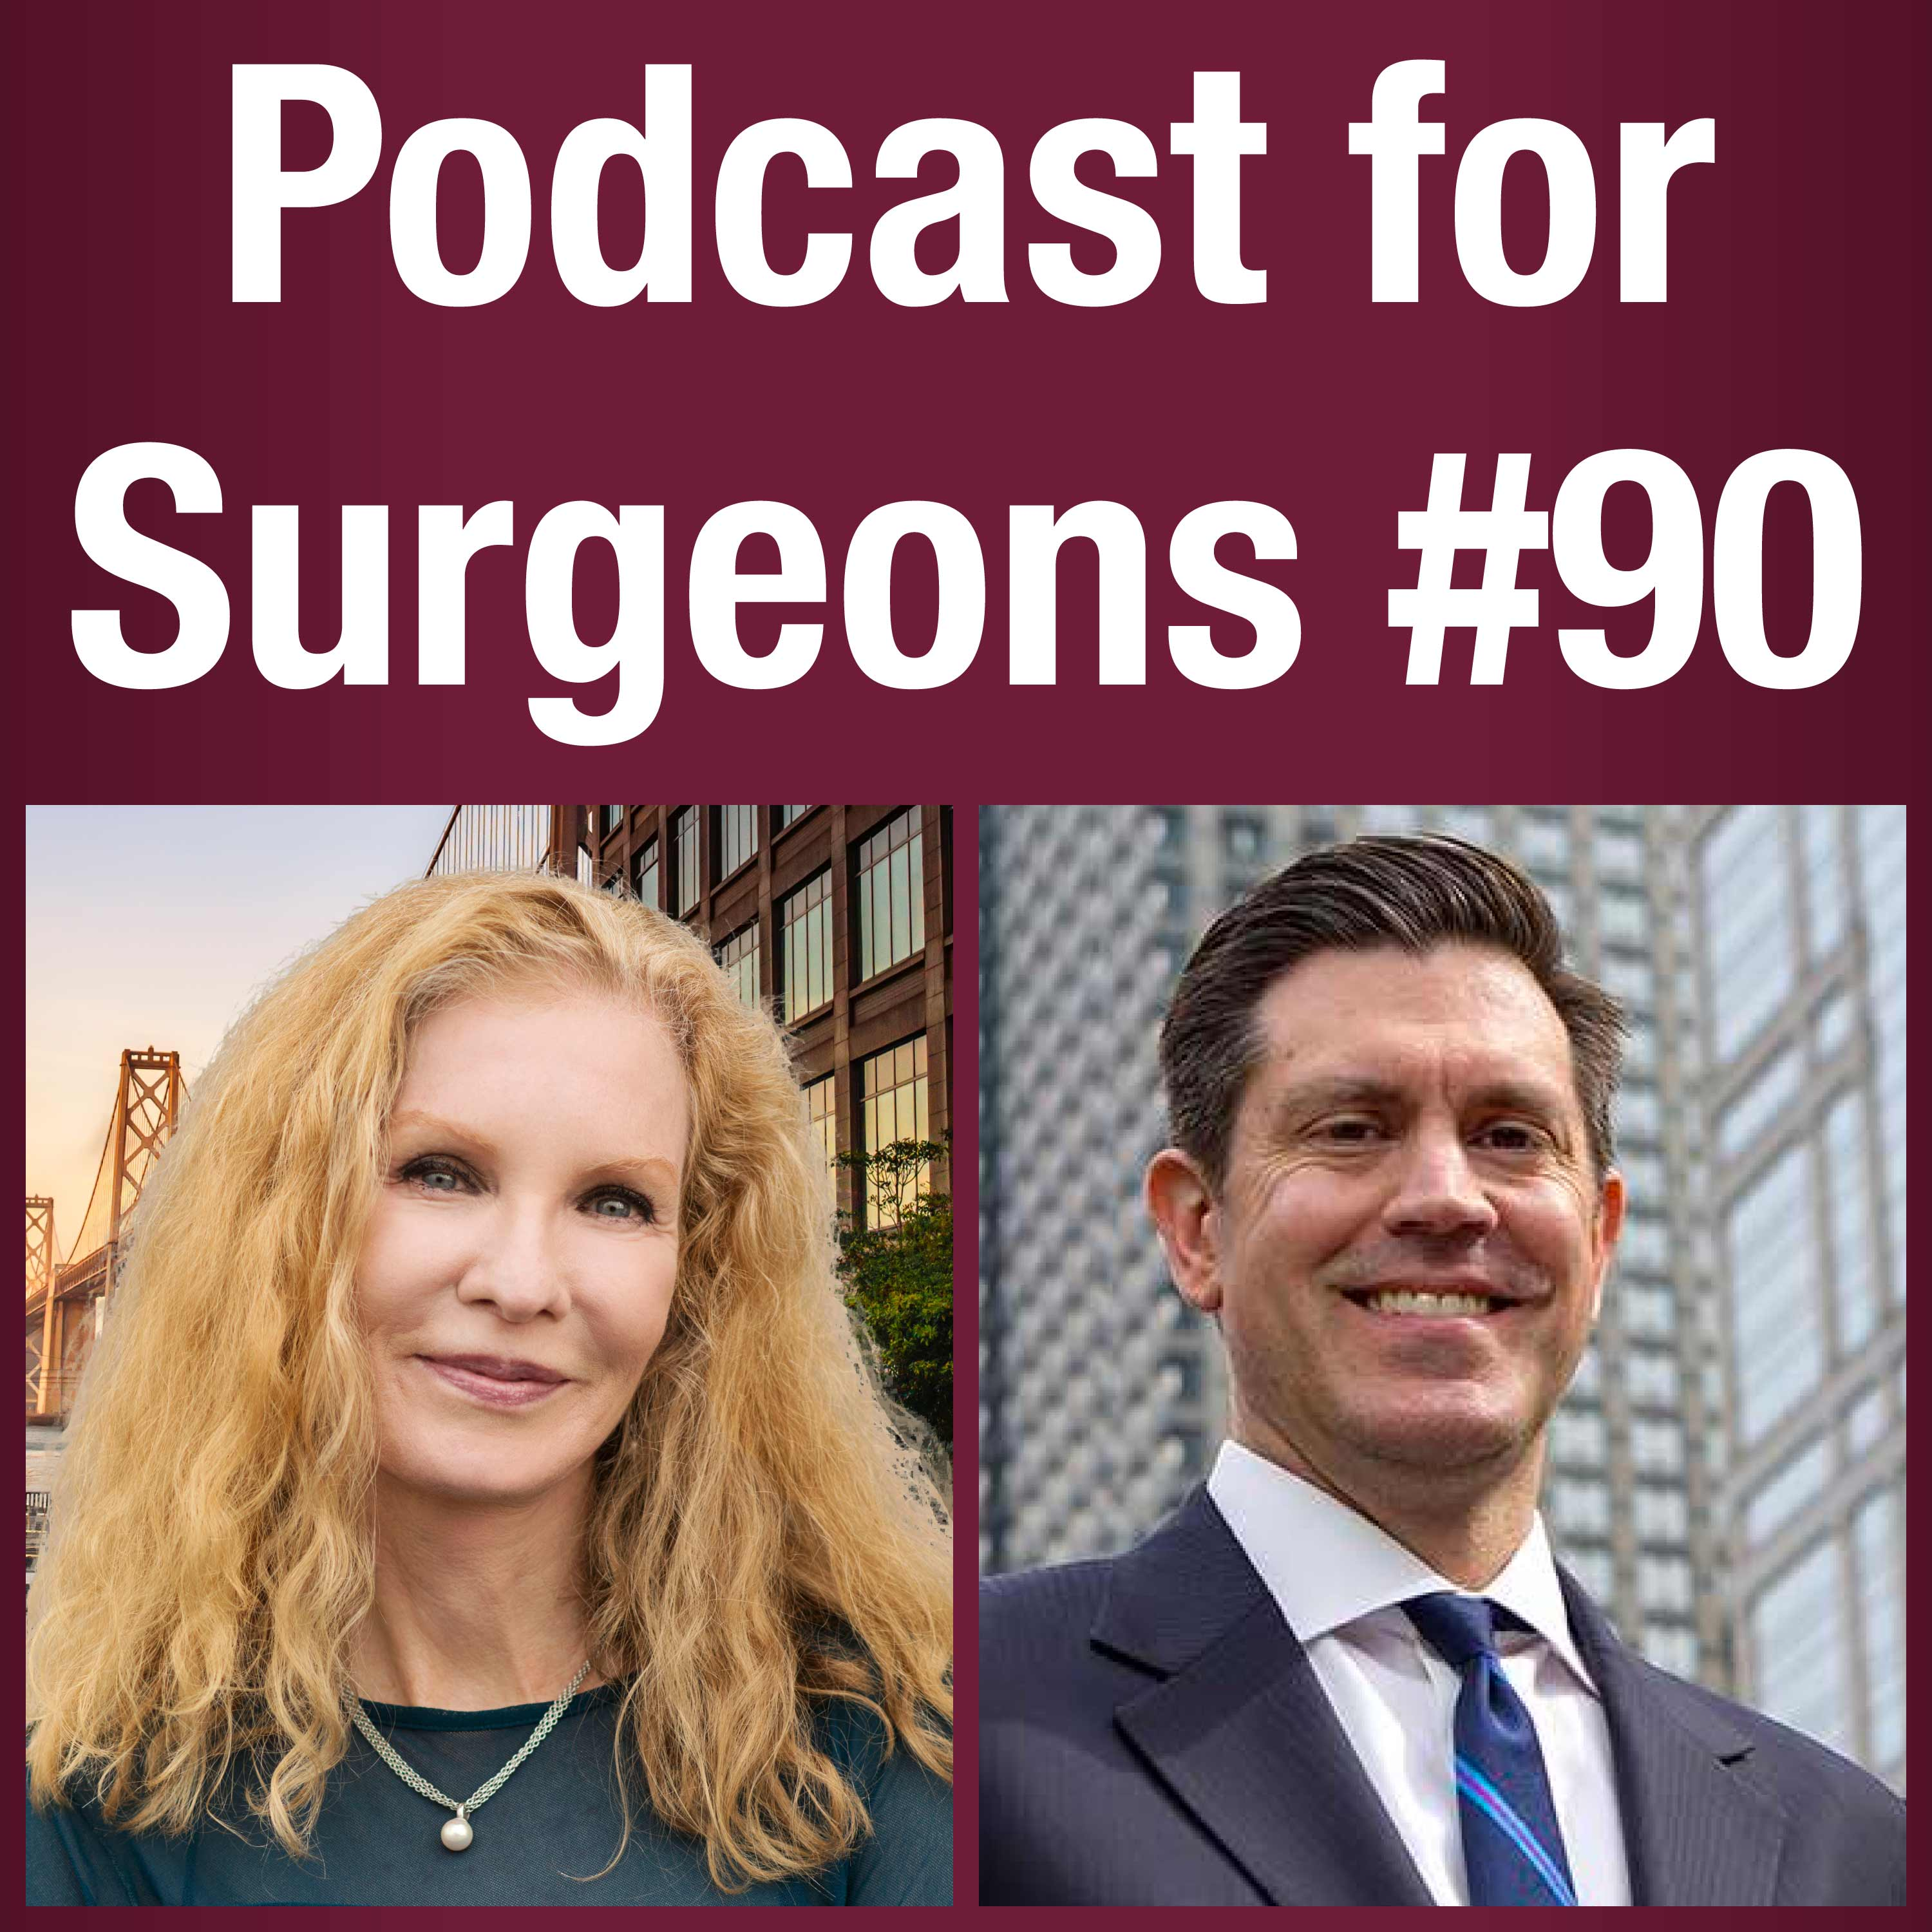 Ep.90: Alex Thiersch, JD • Founder & Director of the American Med Spa Association